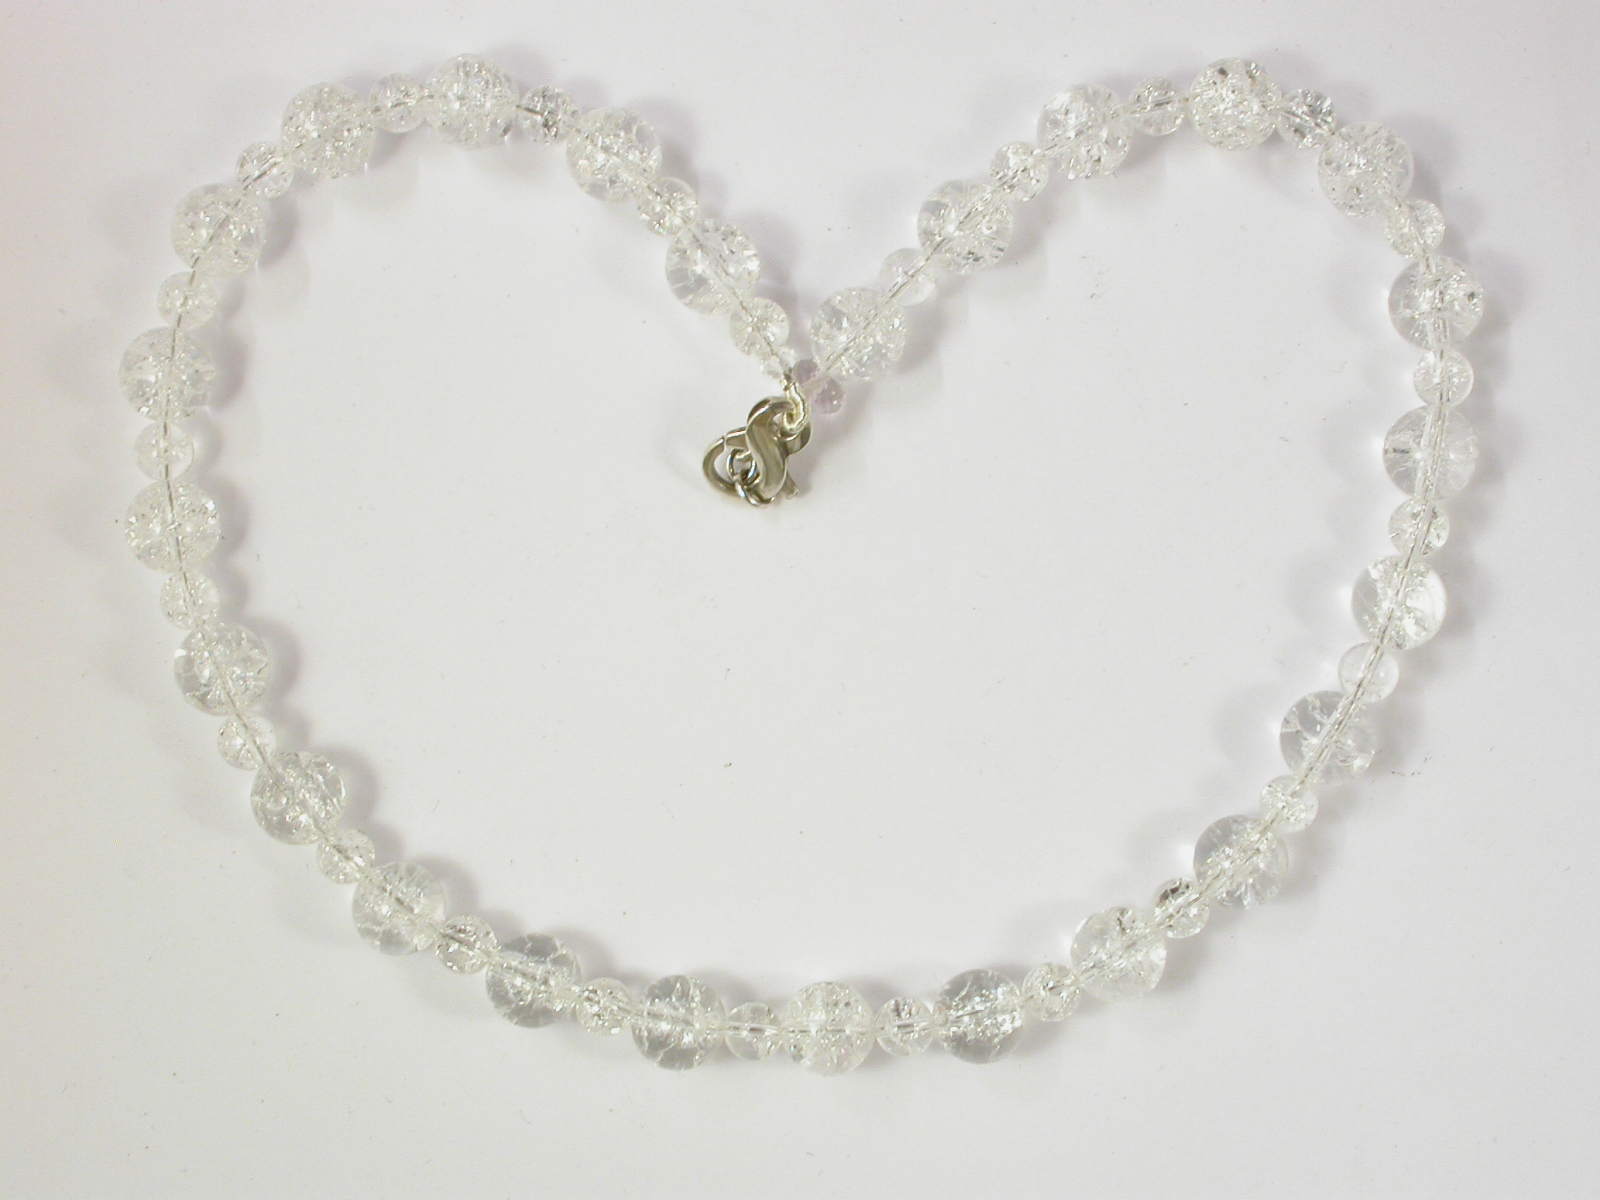 68070 - Facetted Rock Crystal Necklace with silver clasp